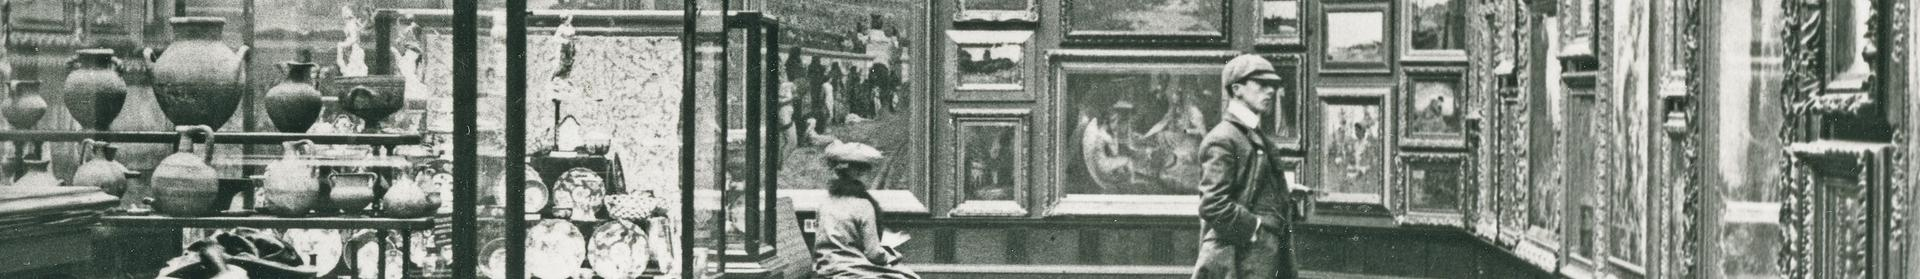 Image: historic image of the Victoria Art Gallery